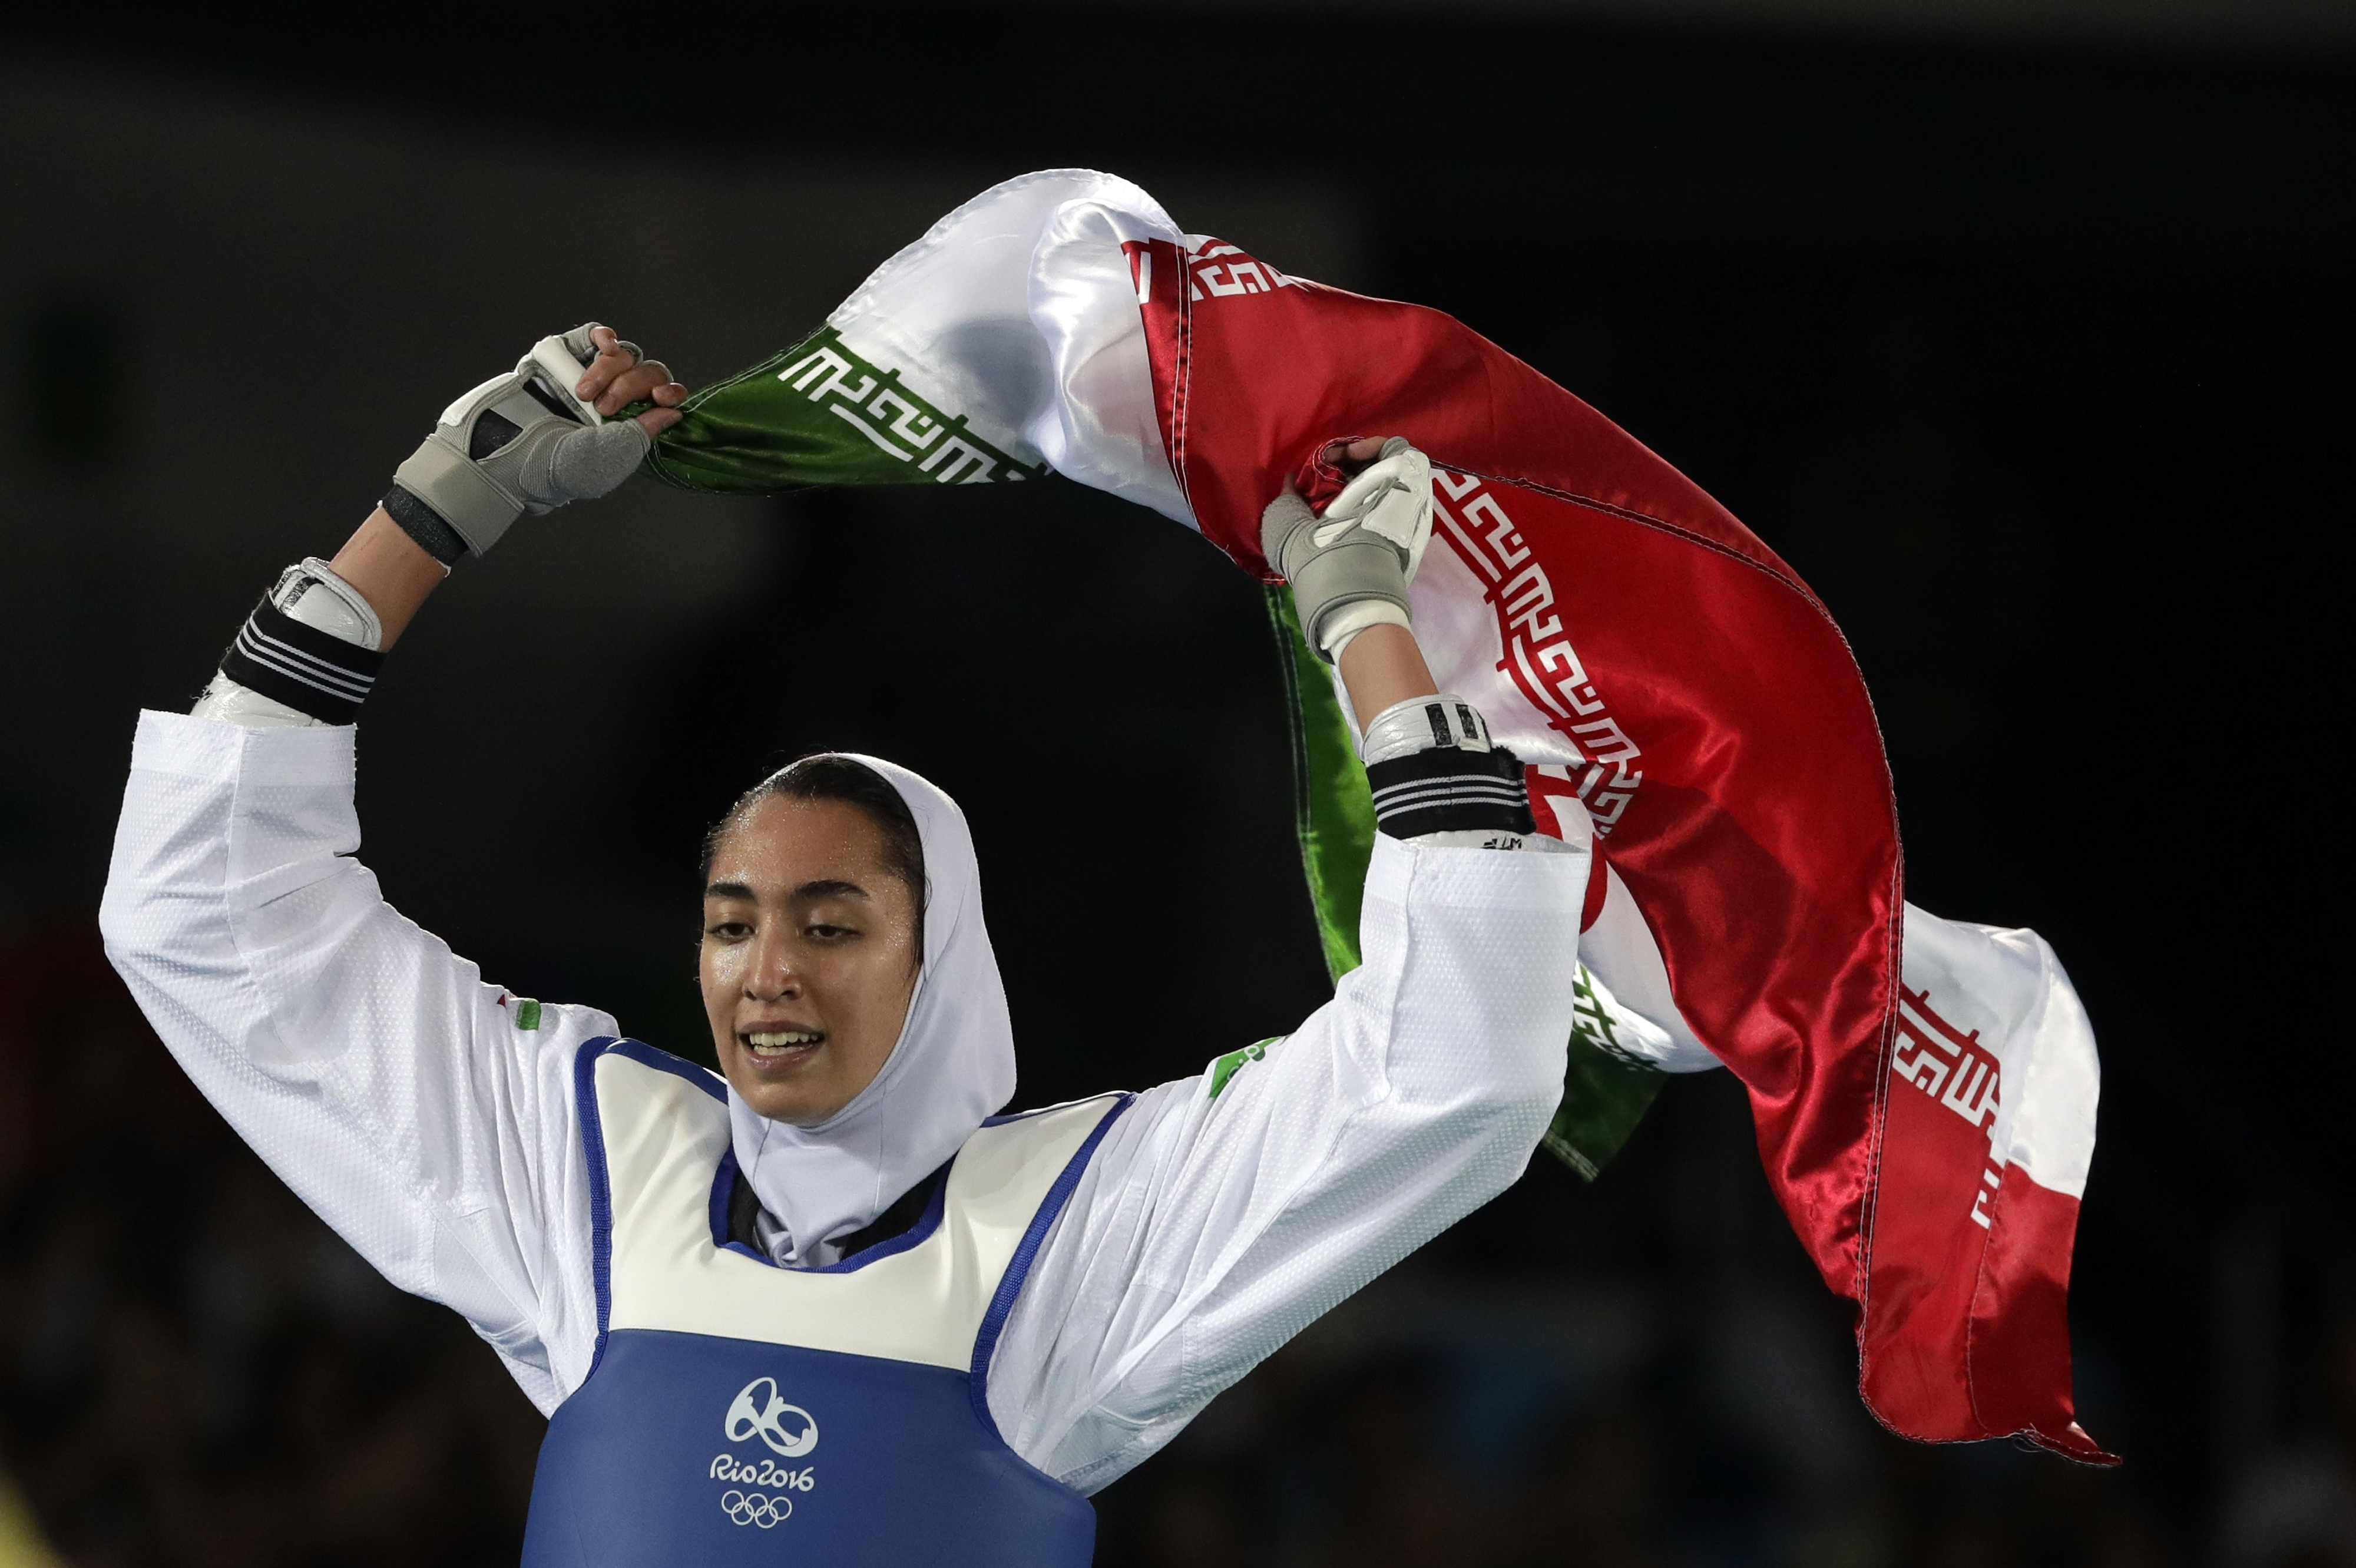 Kimia Alizadeh Zenoorin of Iran celebrates after winning the bronze medal in a women's Taekwondo 57-kg competition at the 2016 Summer Olympics in Rio de Janeiro, Brazil, on Aug. 18, 2016.